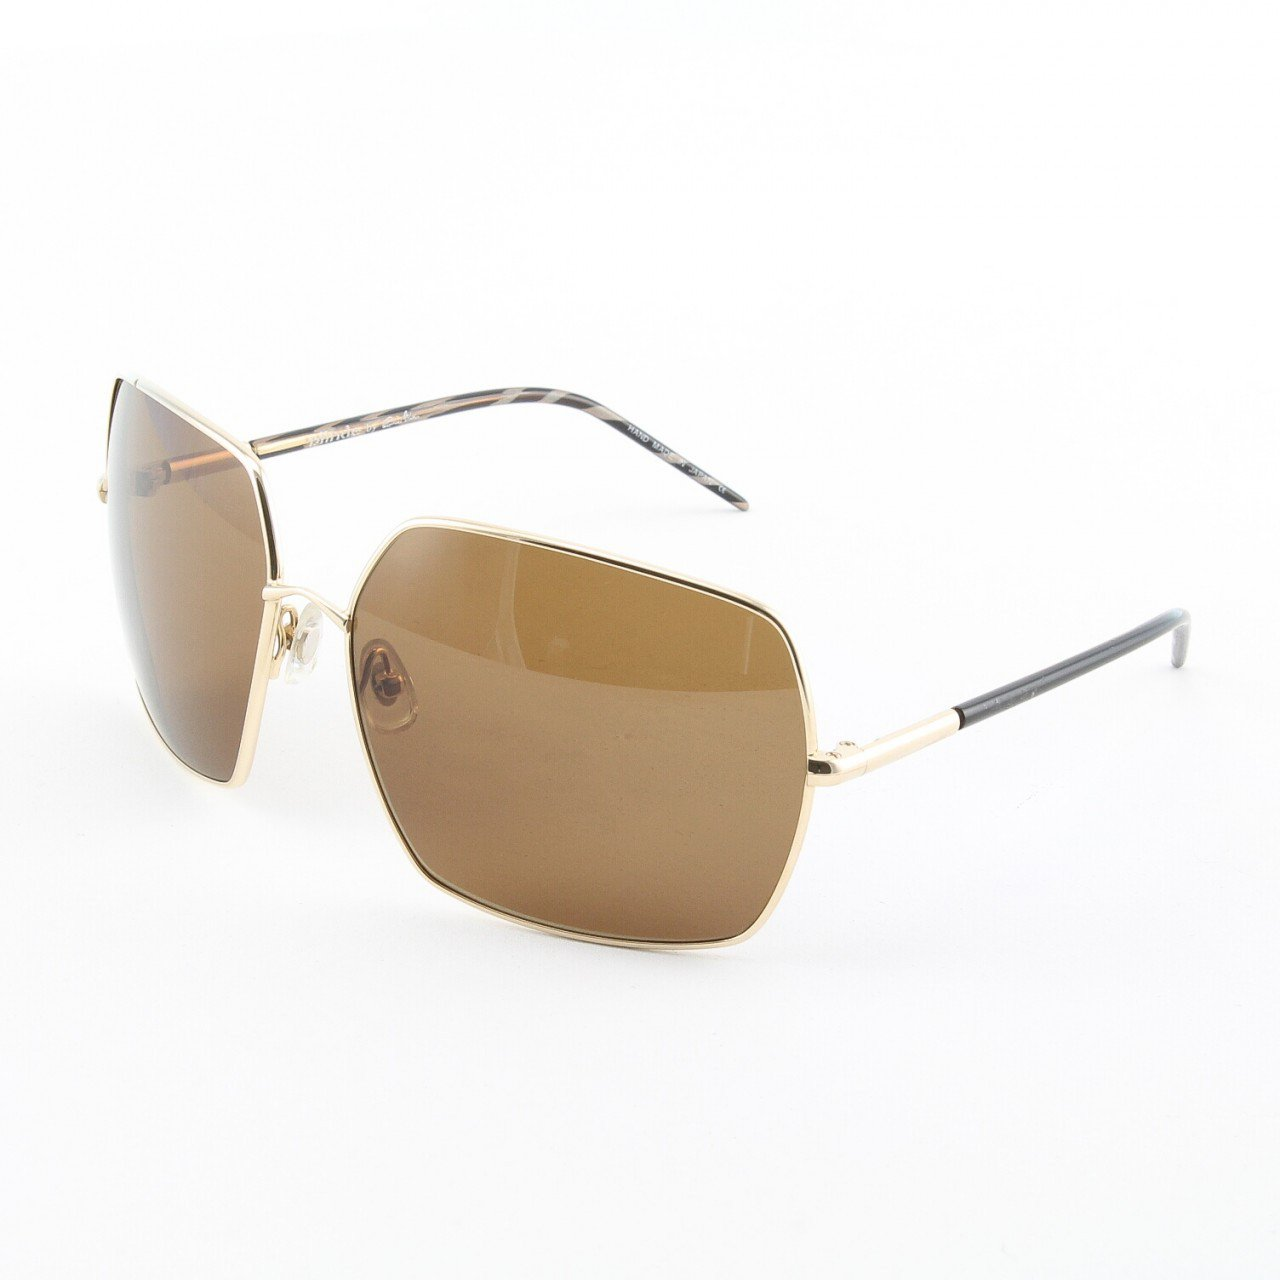 Blinde C'mon Women's Sunglasses Col. Gold with Solid Brown Lenses